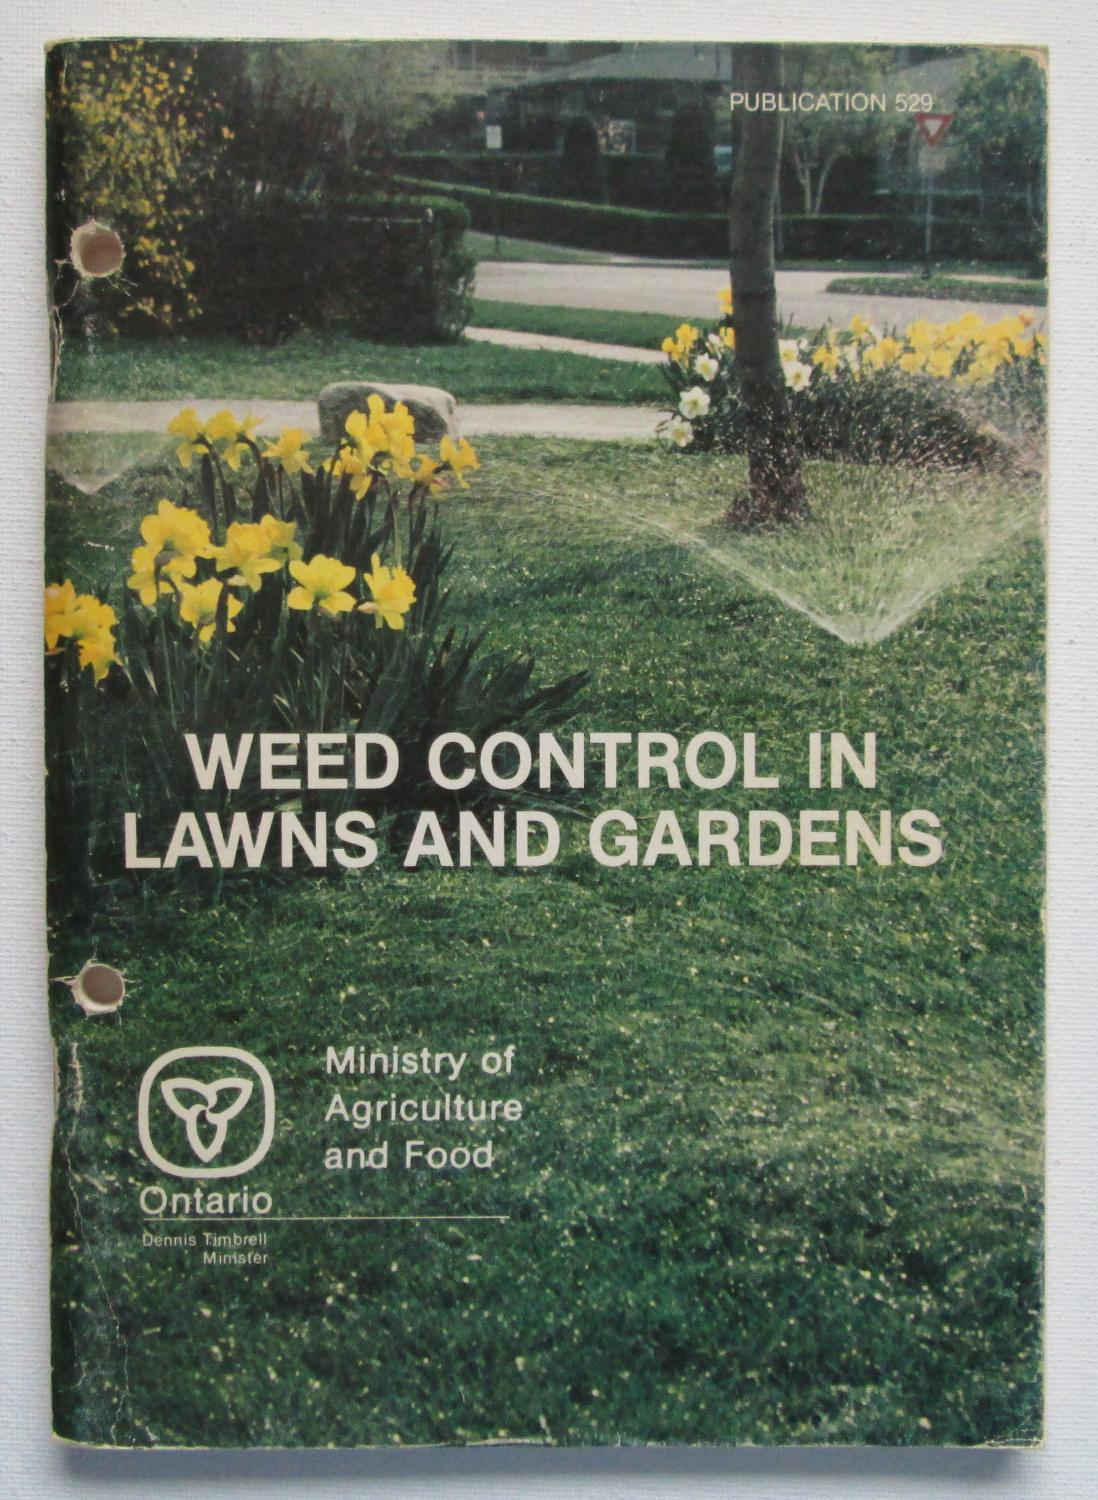 Weed Control in Lawns and Gardens: Alex, J. F. ; Waywell, C. G. ; Switzer, C. M.